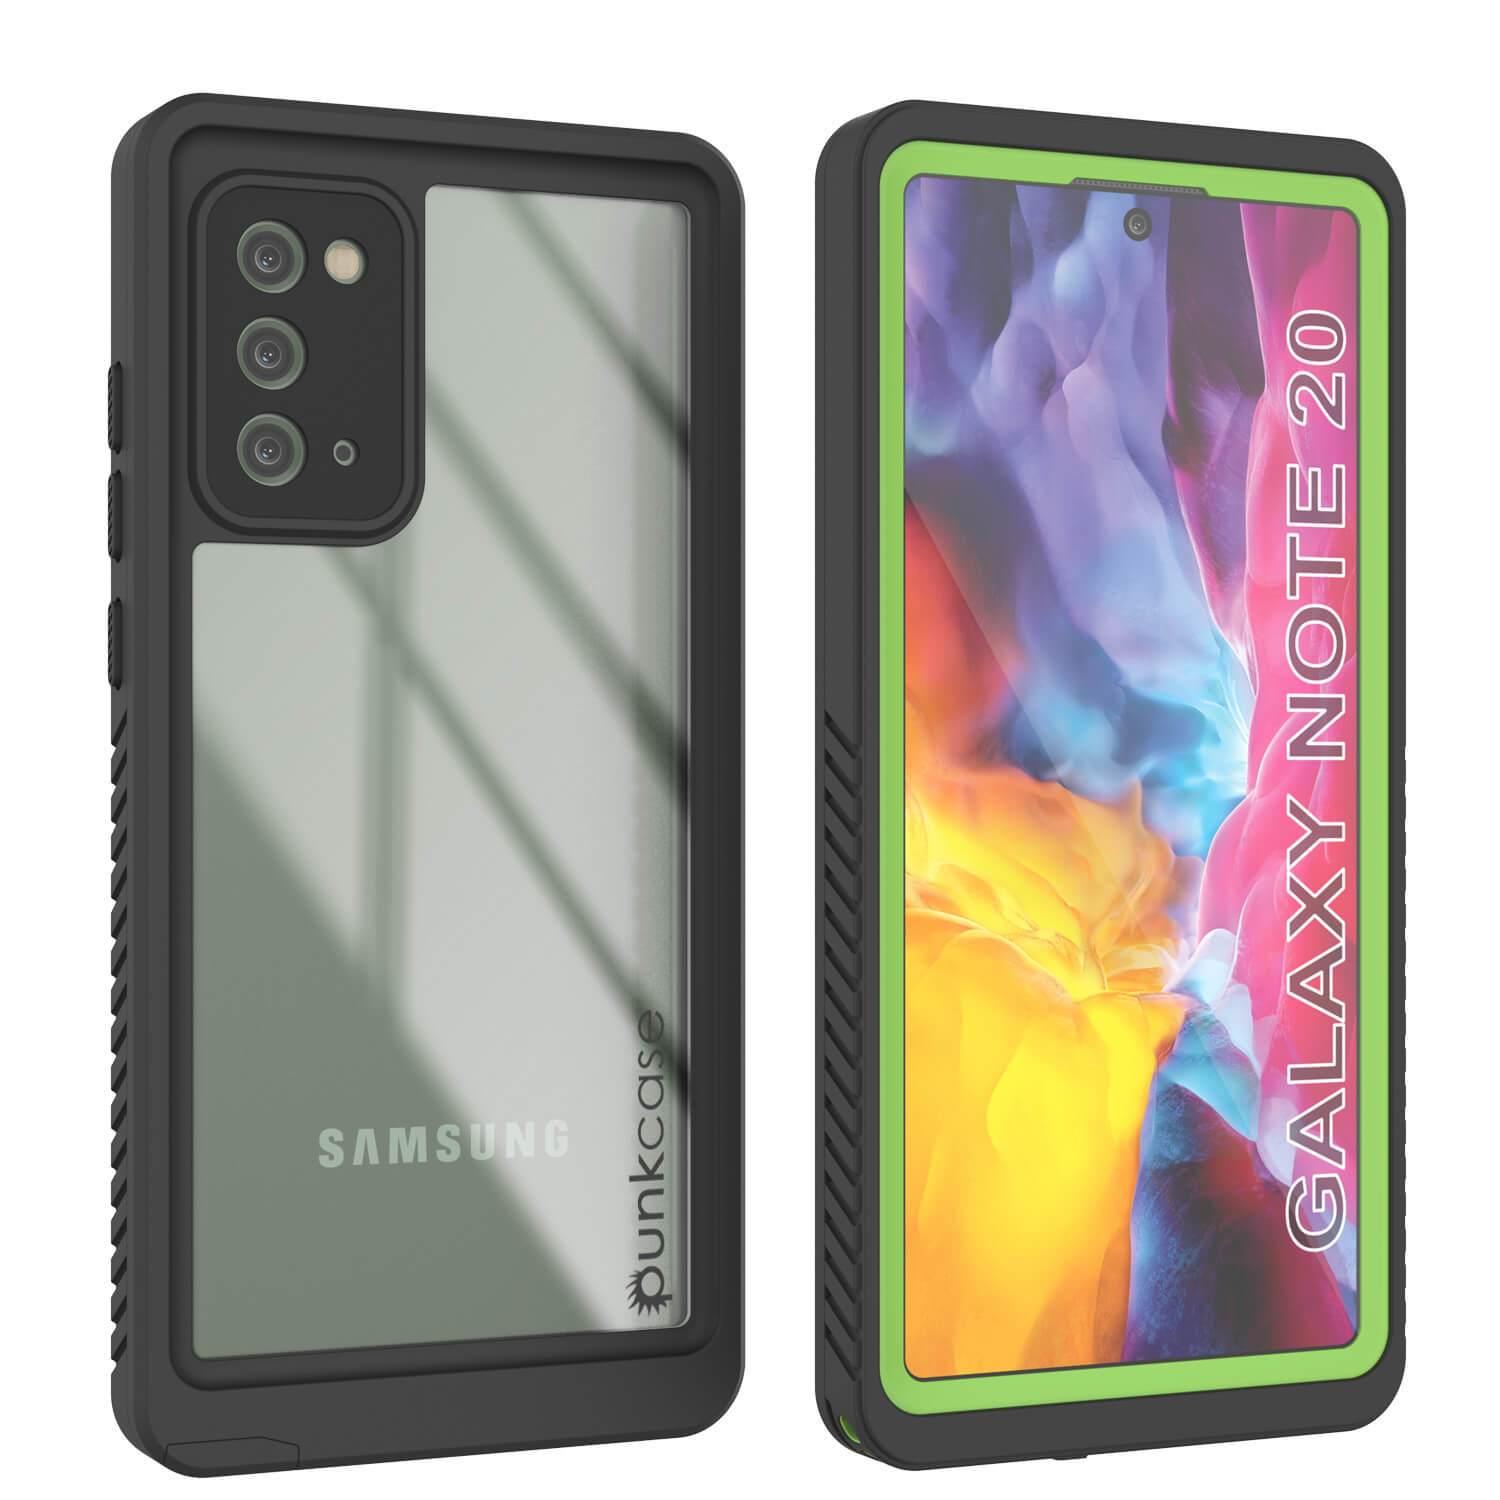 Galaxy Note 20 Case, Punkcase [Extreme Series] Armor Cover W/ Built In Screen Protector [Light Green]